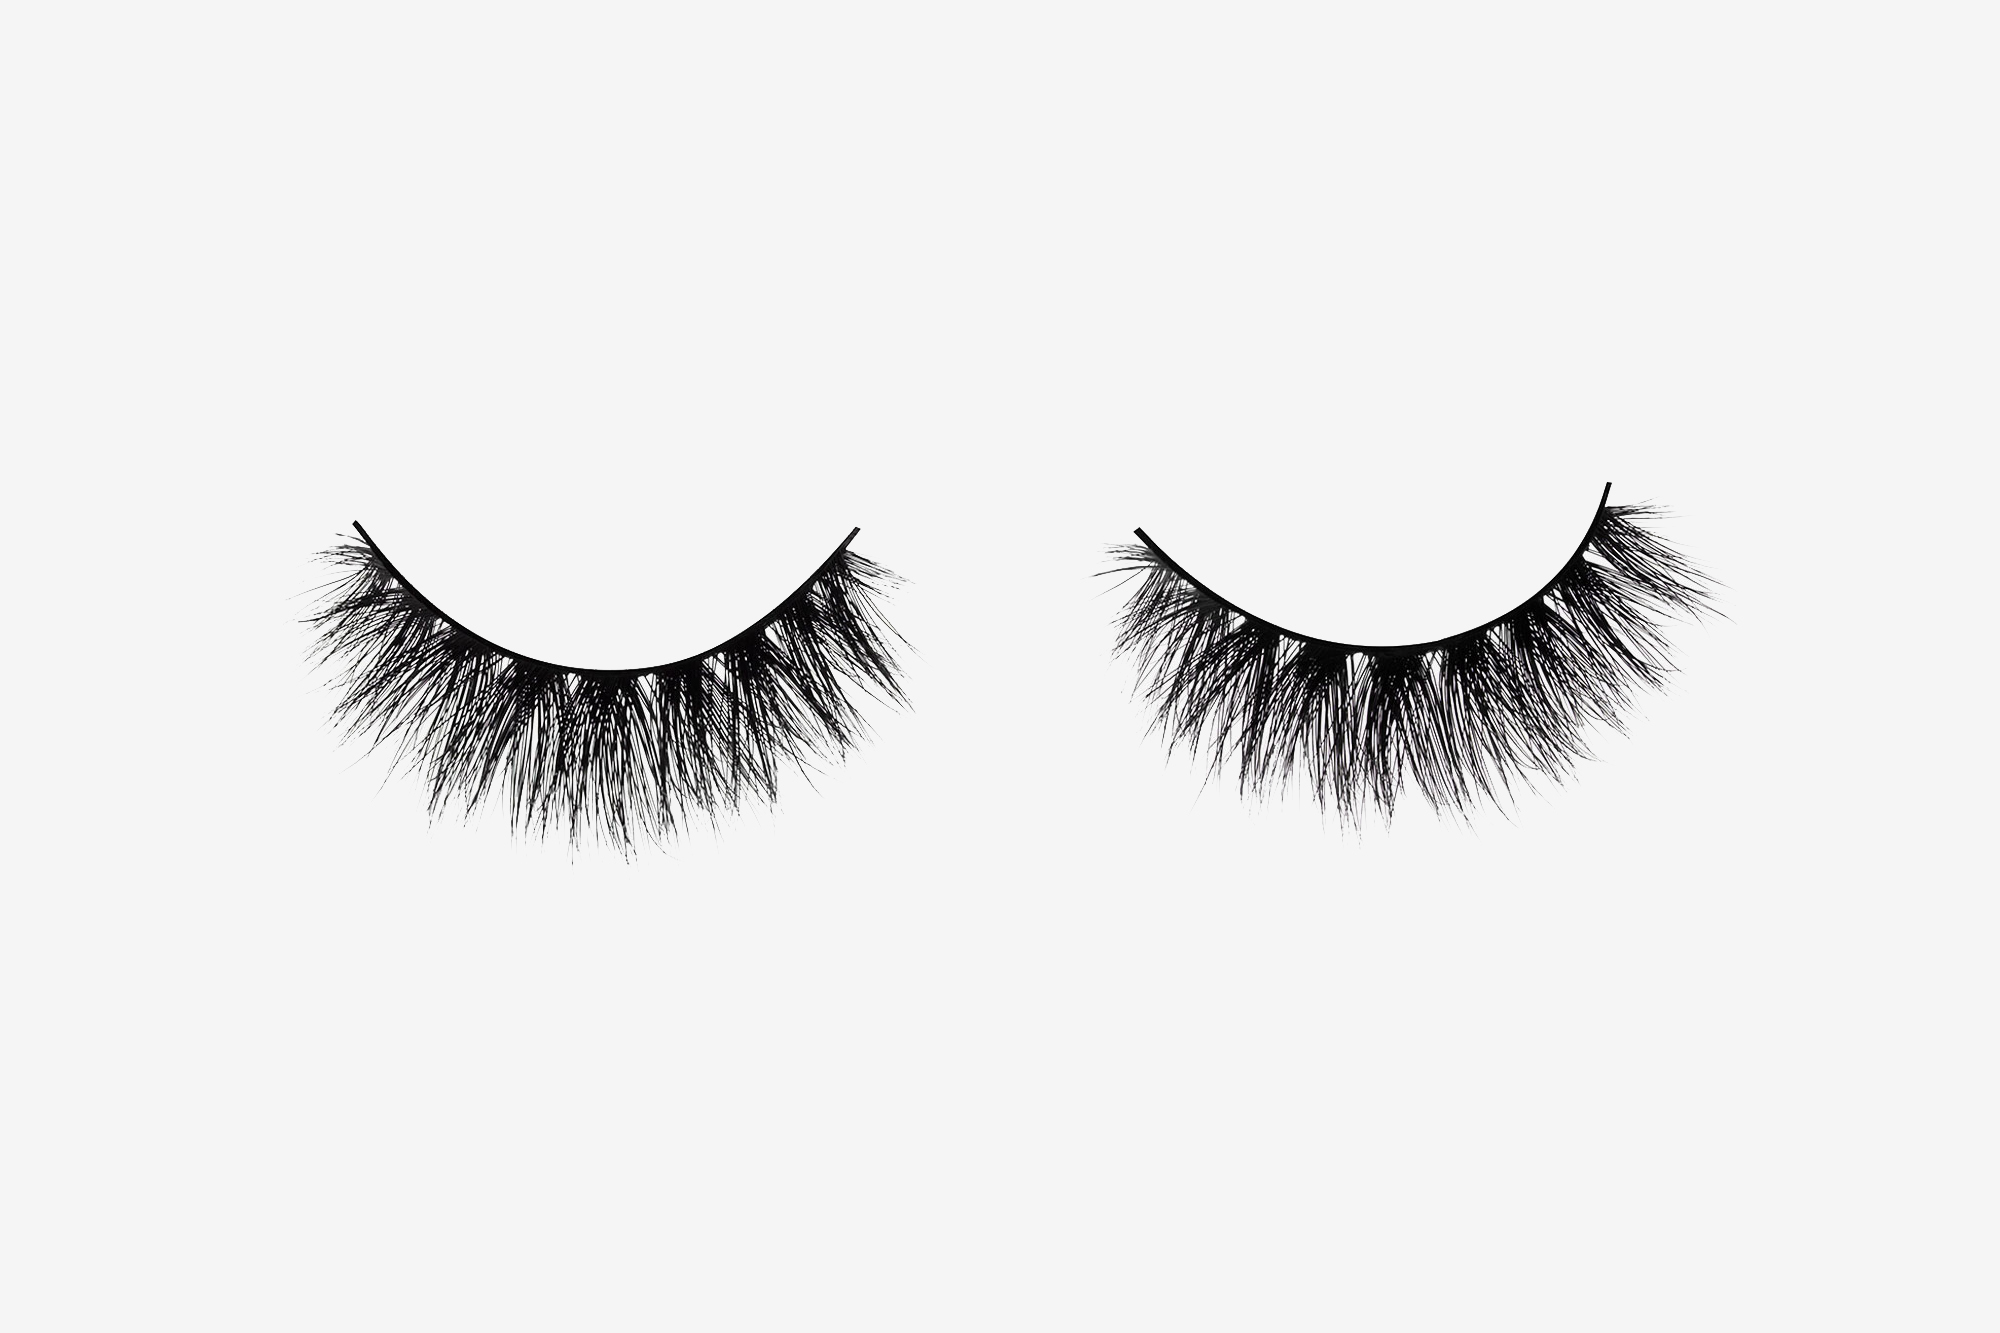 Savanna Mink Lashes, two false eyelashes side by side on grey background